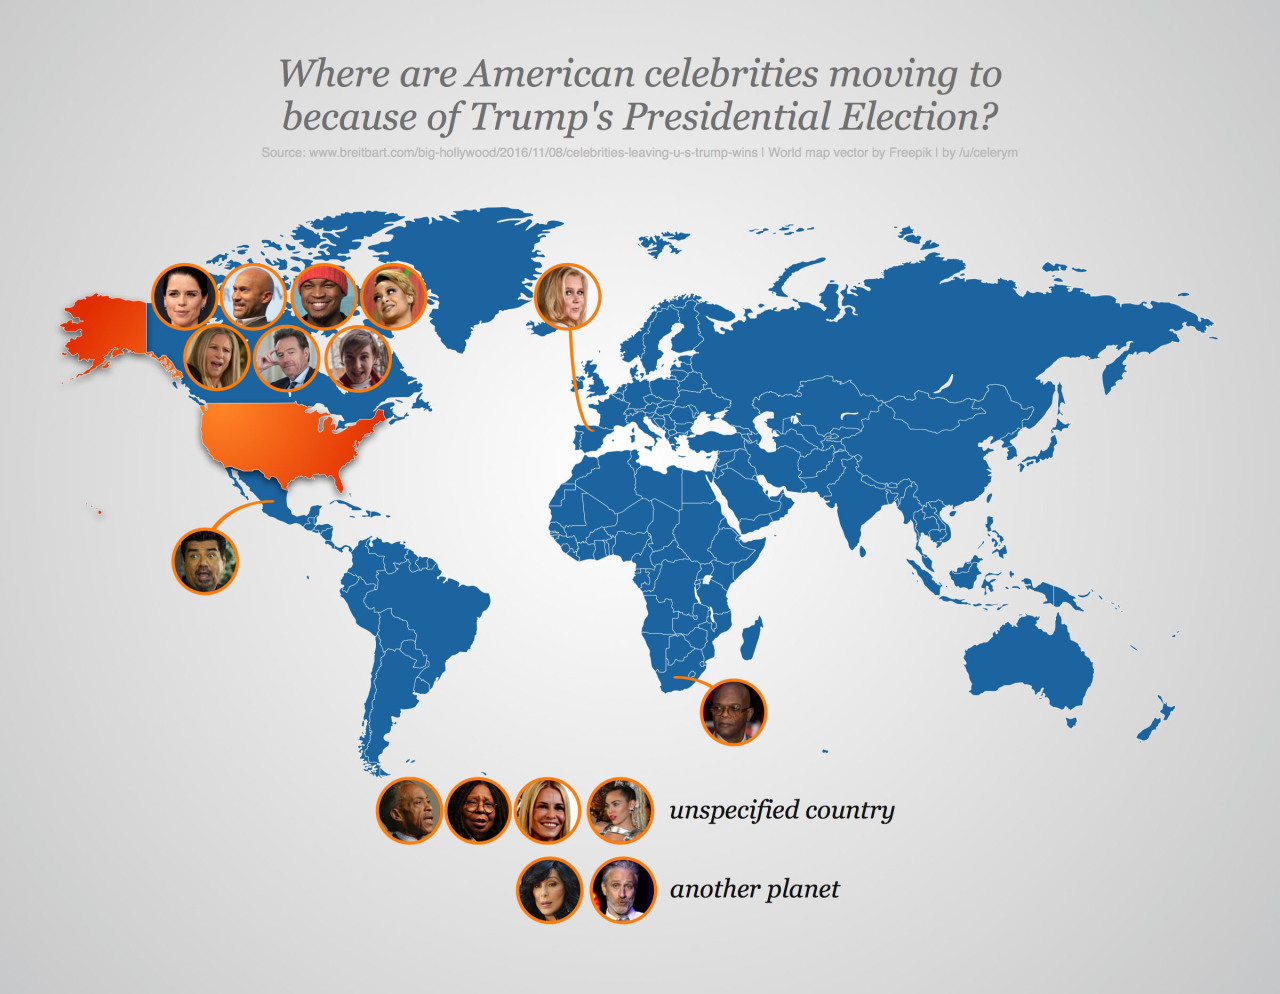 Celebrities moving because of trump